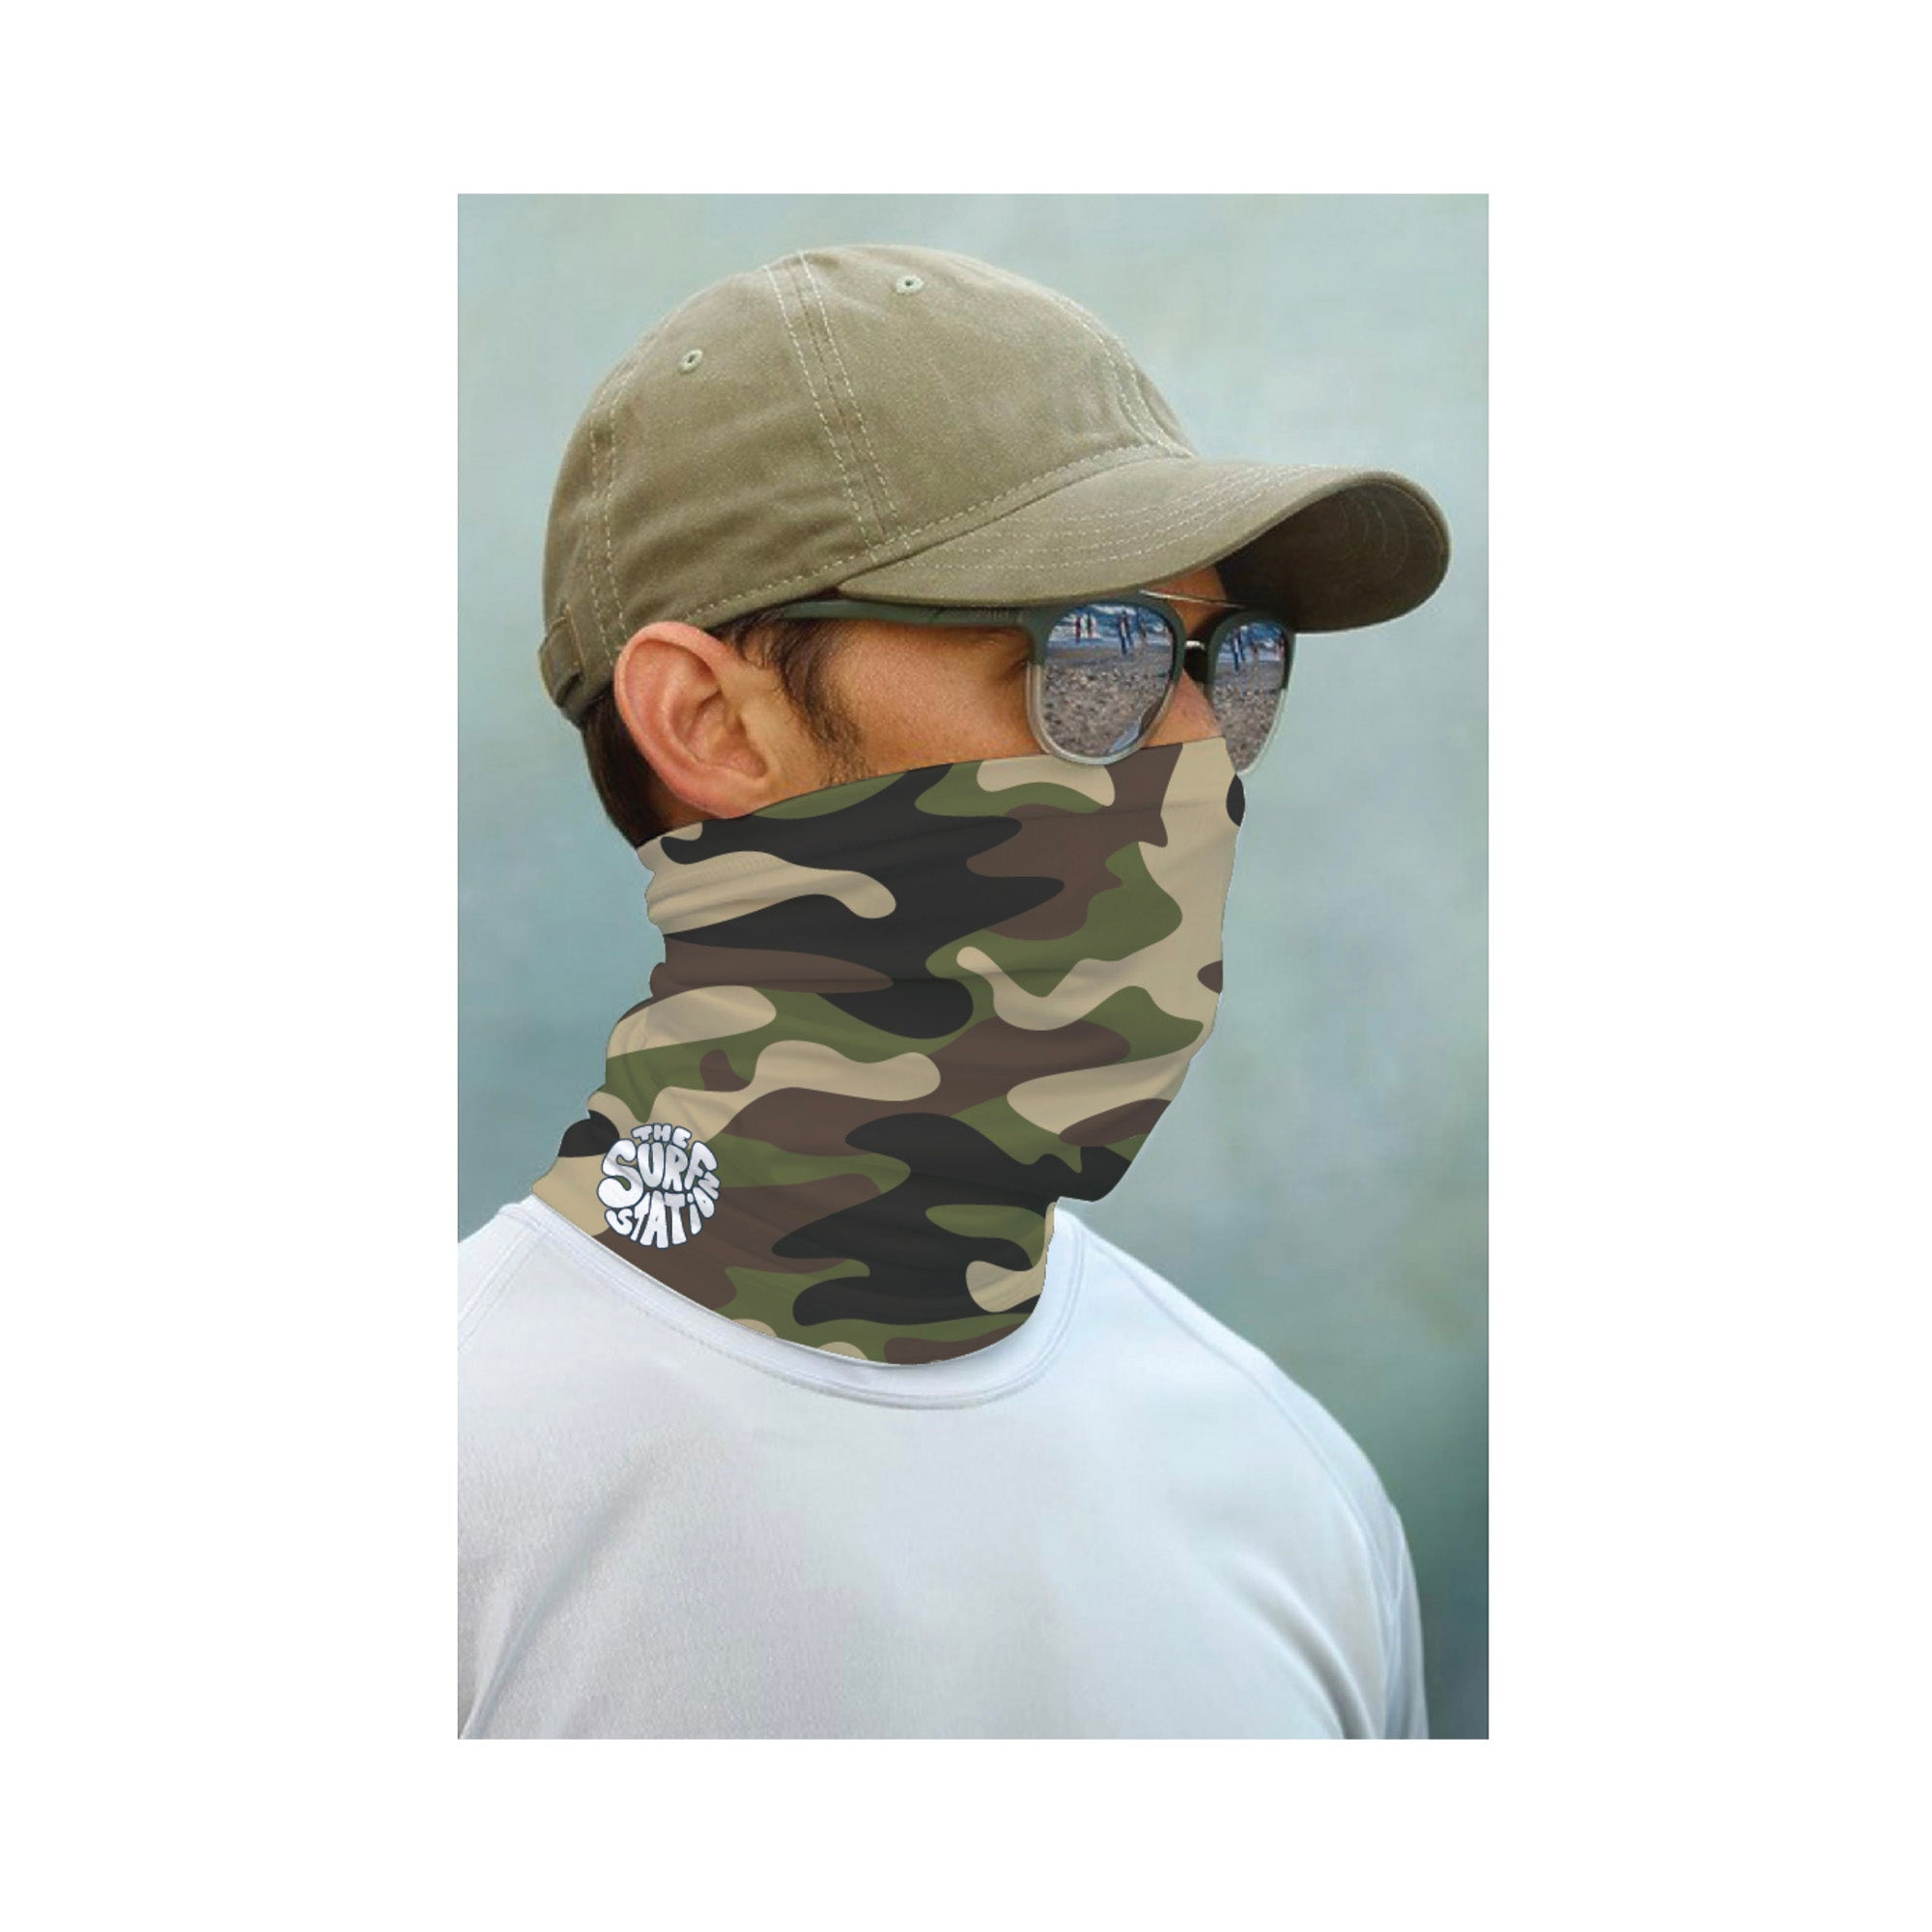 Surf Station Face Guard - Camo